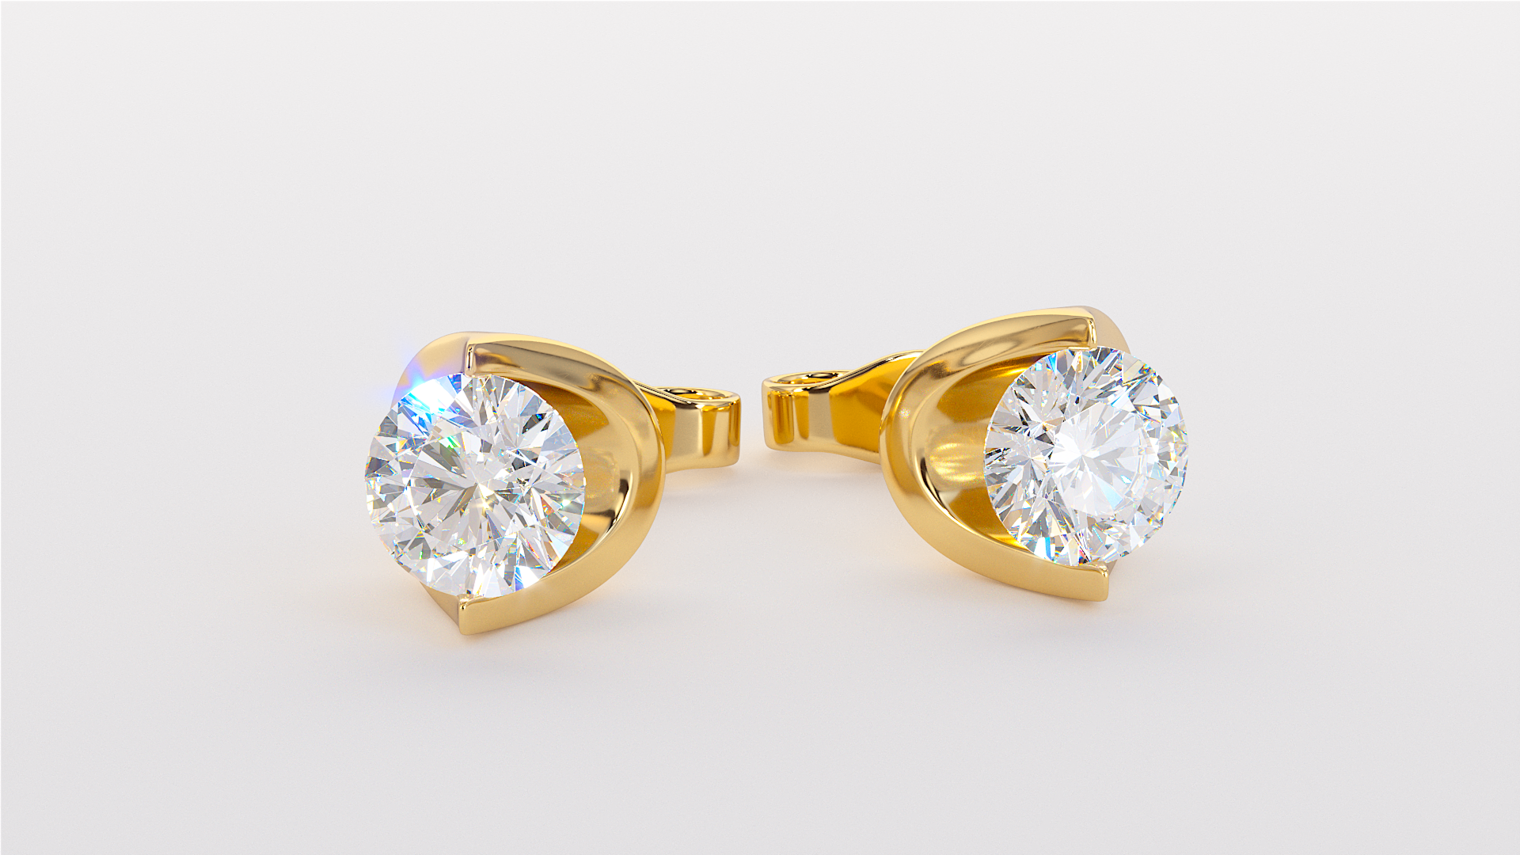 Earrings, Stud, Diamonds, Yellow Gold